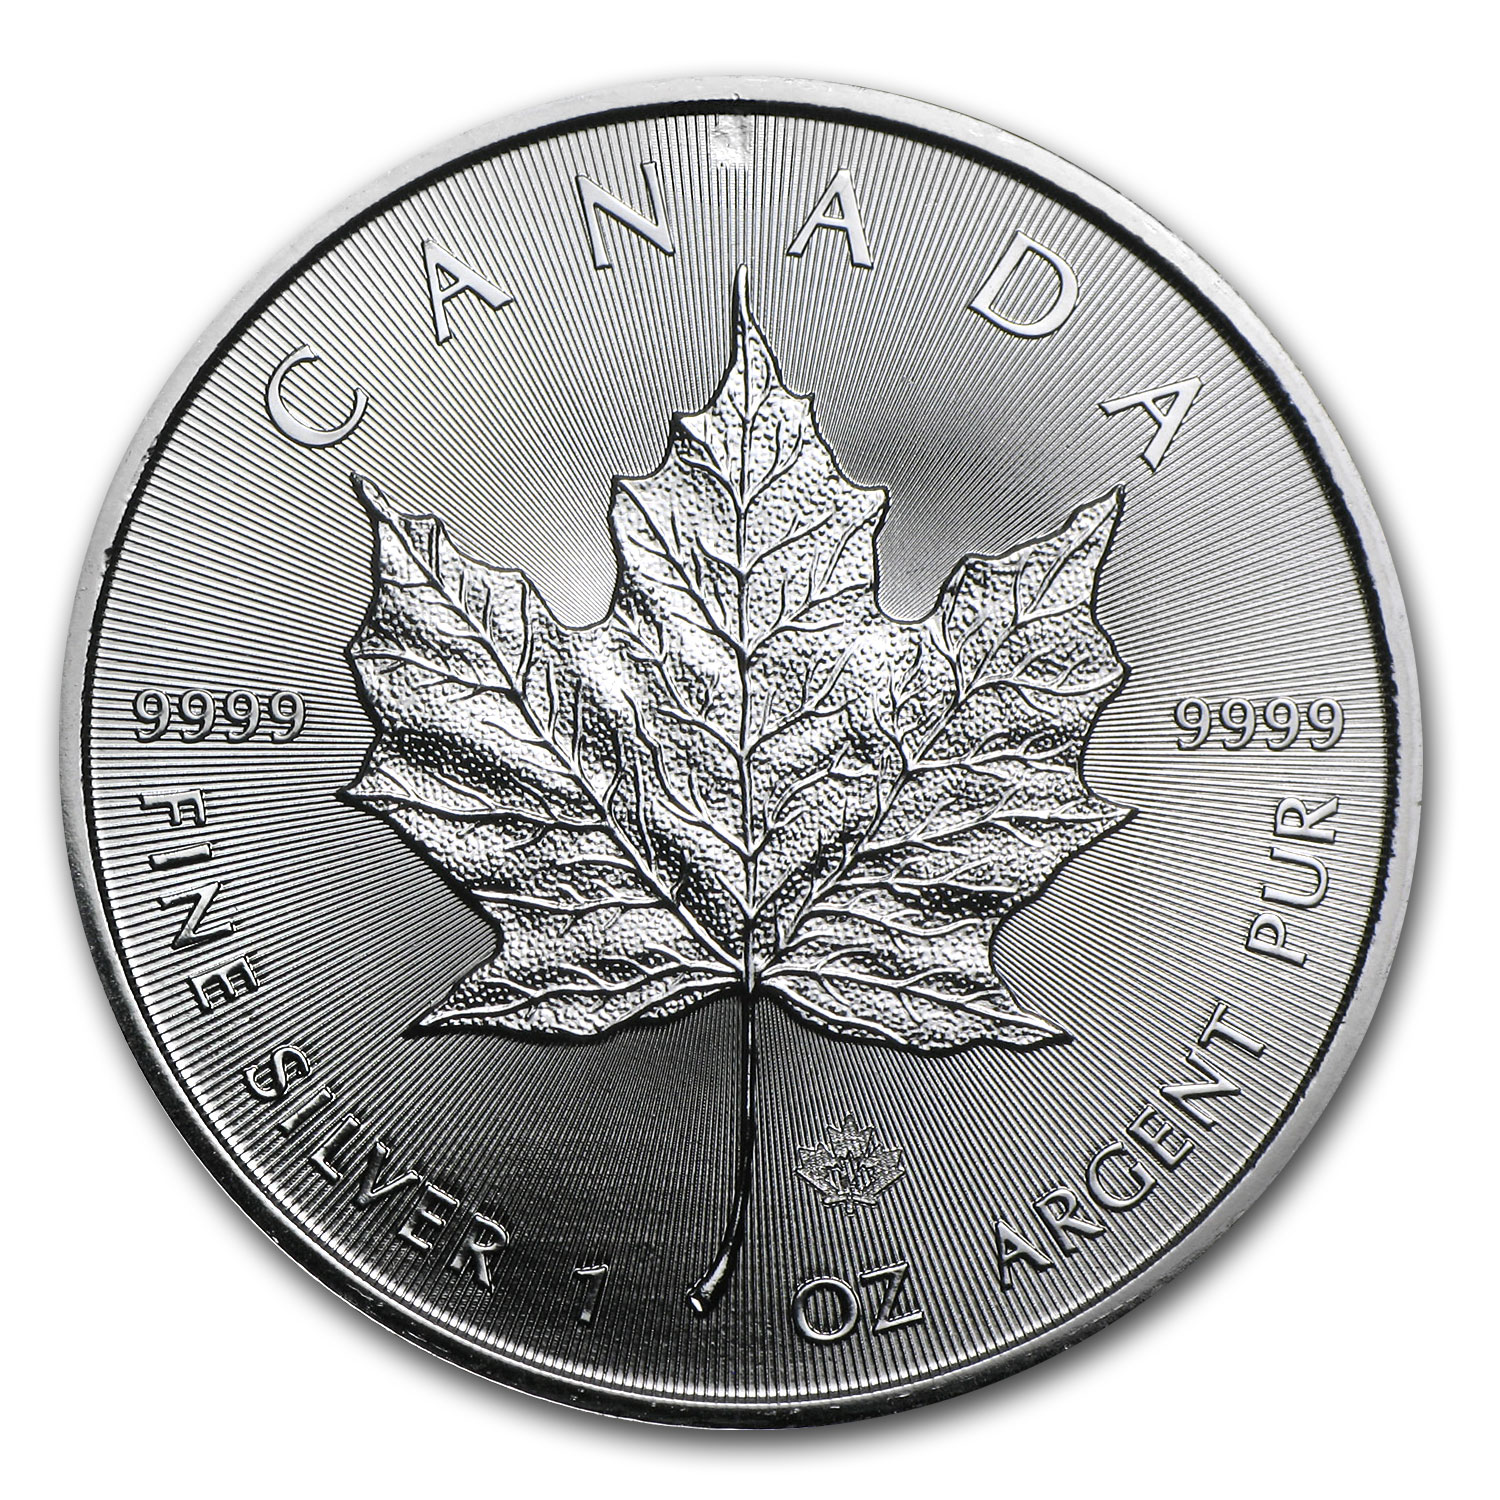 2014 Canada 1 oz Silver Maple Leaf (Reverse Struck Mint Error)